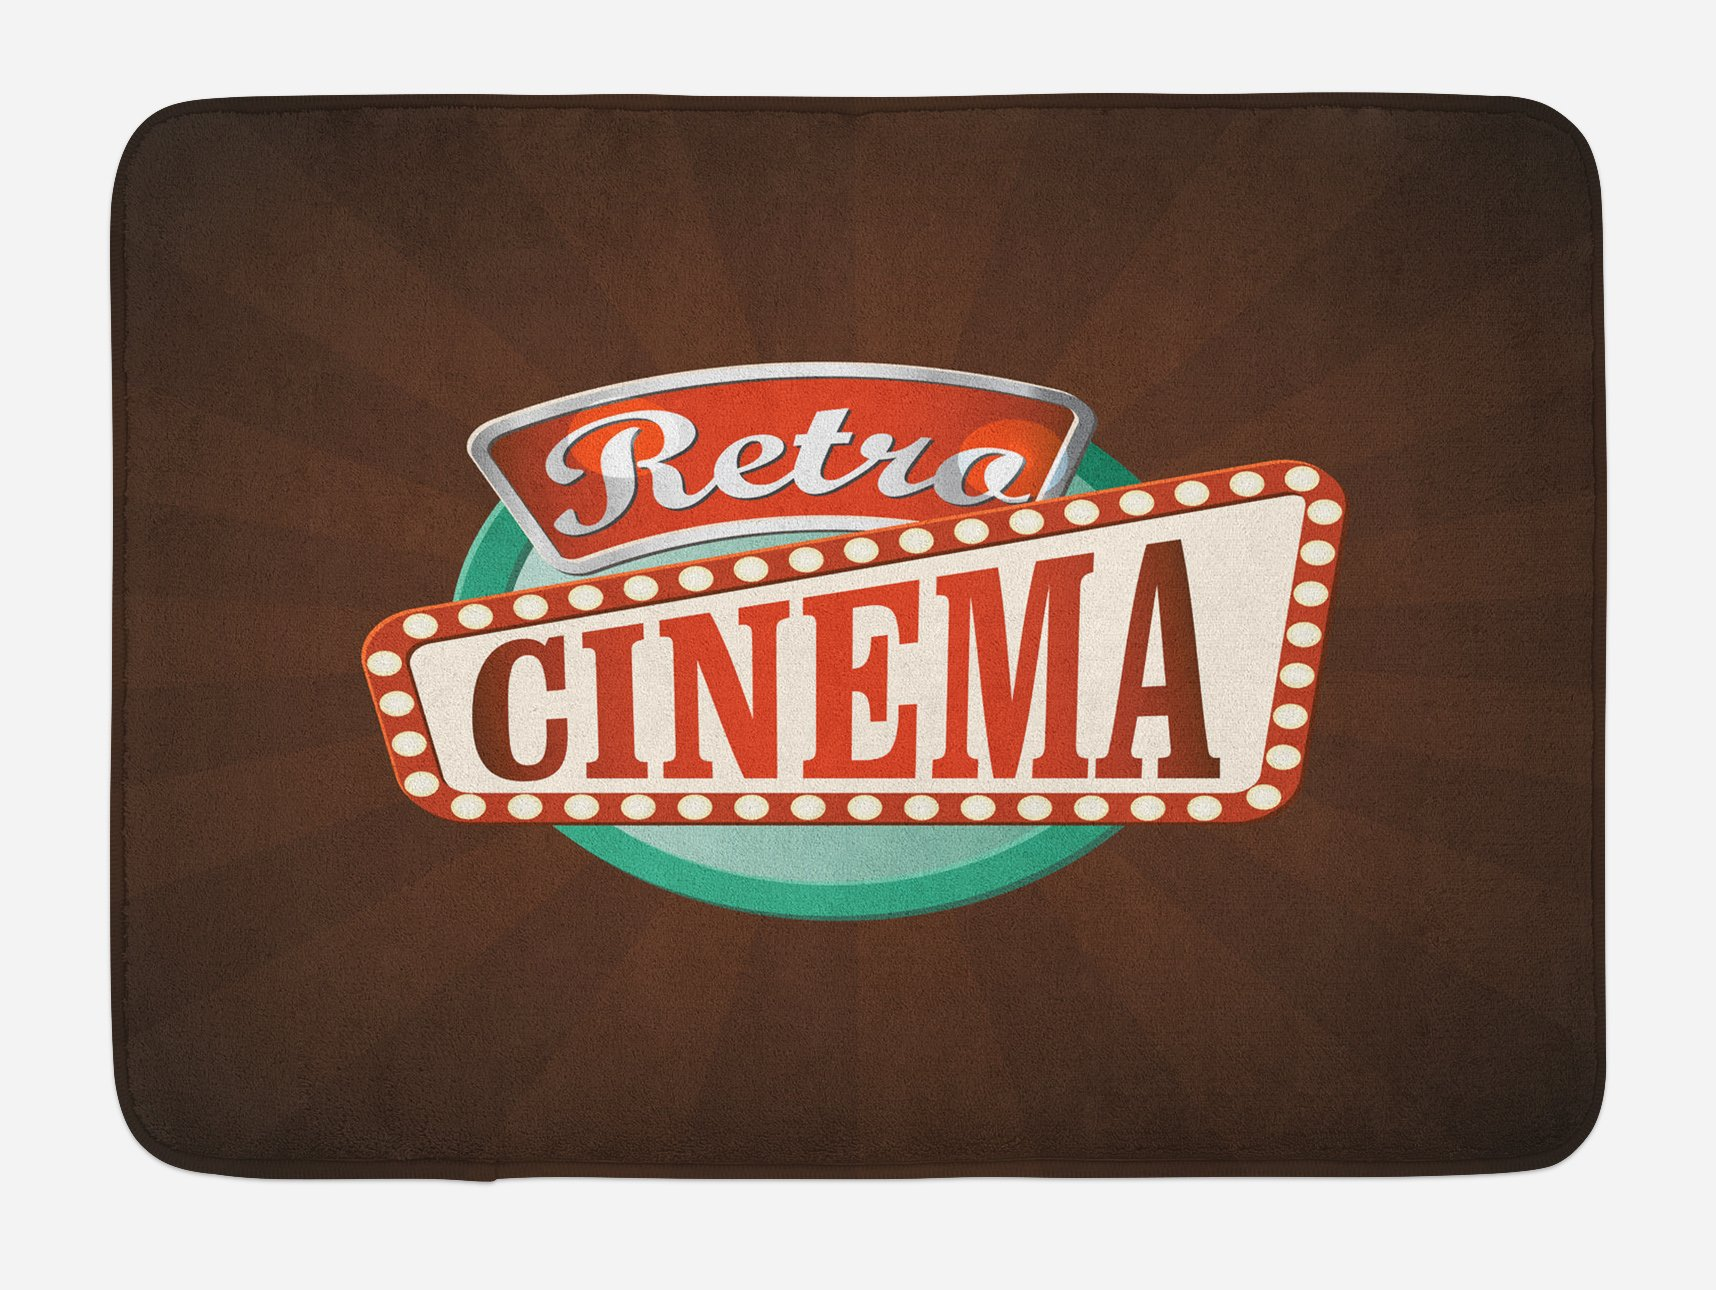 Ambesonne Movie Theater Bath Mat, Retro Style Cinema Sign Design Film Festival Hollywood Theme, Plush Bathroom Decor Mat with Non Slip Backing, 29.5 W X 17.5 W Inches, Brown Turquoise Vermilion